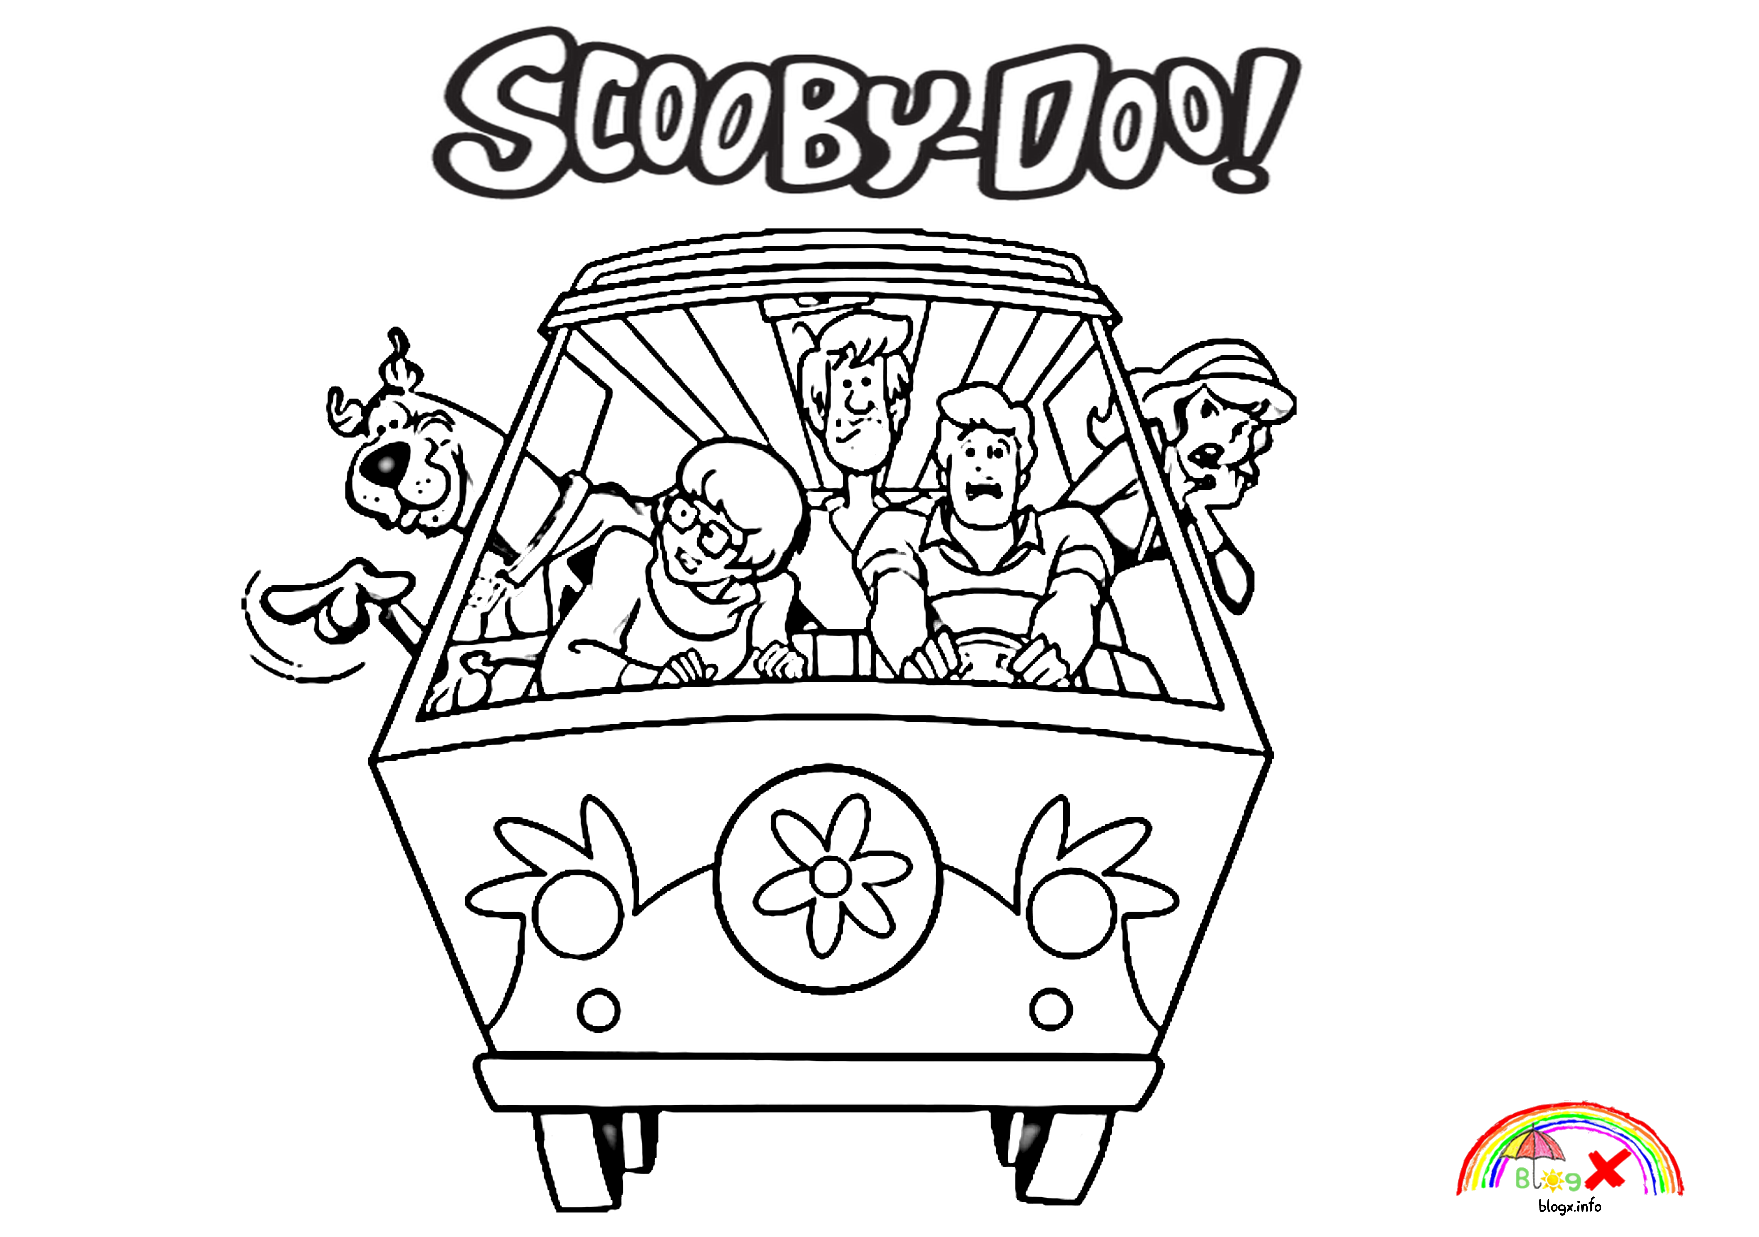 Scooby Doo And The Mystery Machine Coloring Page